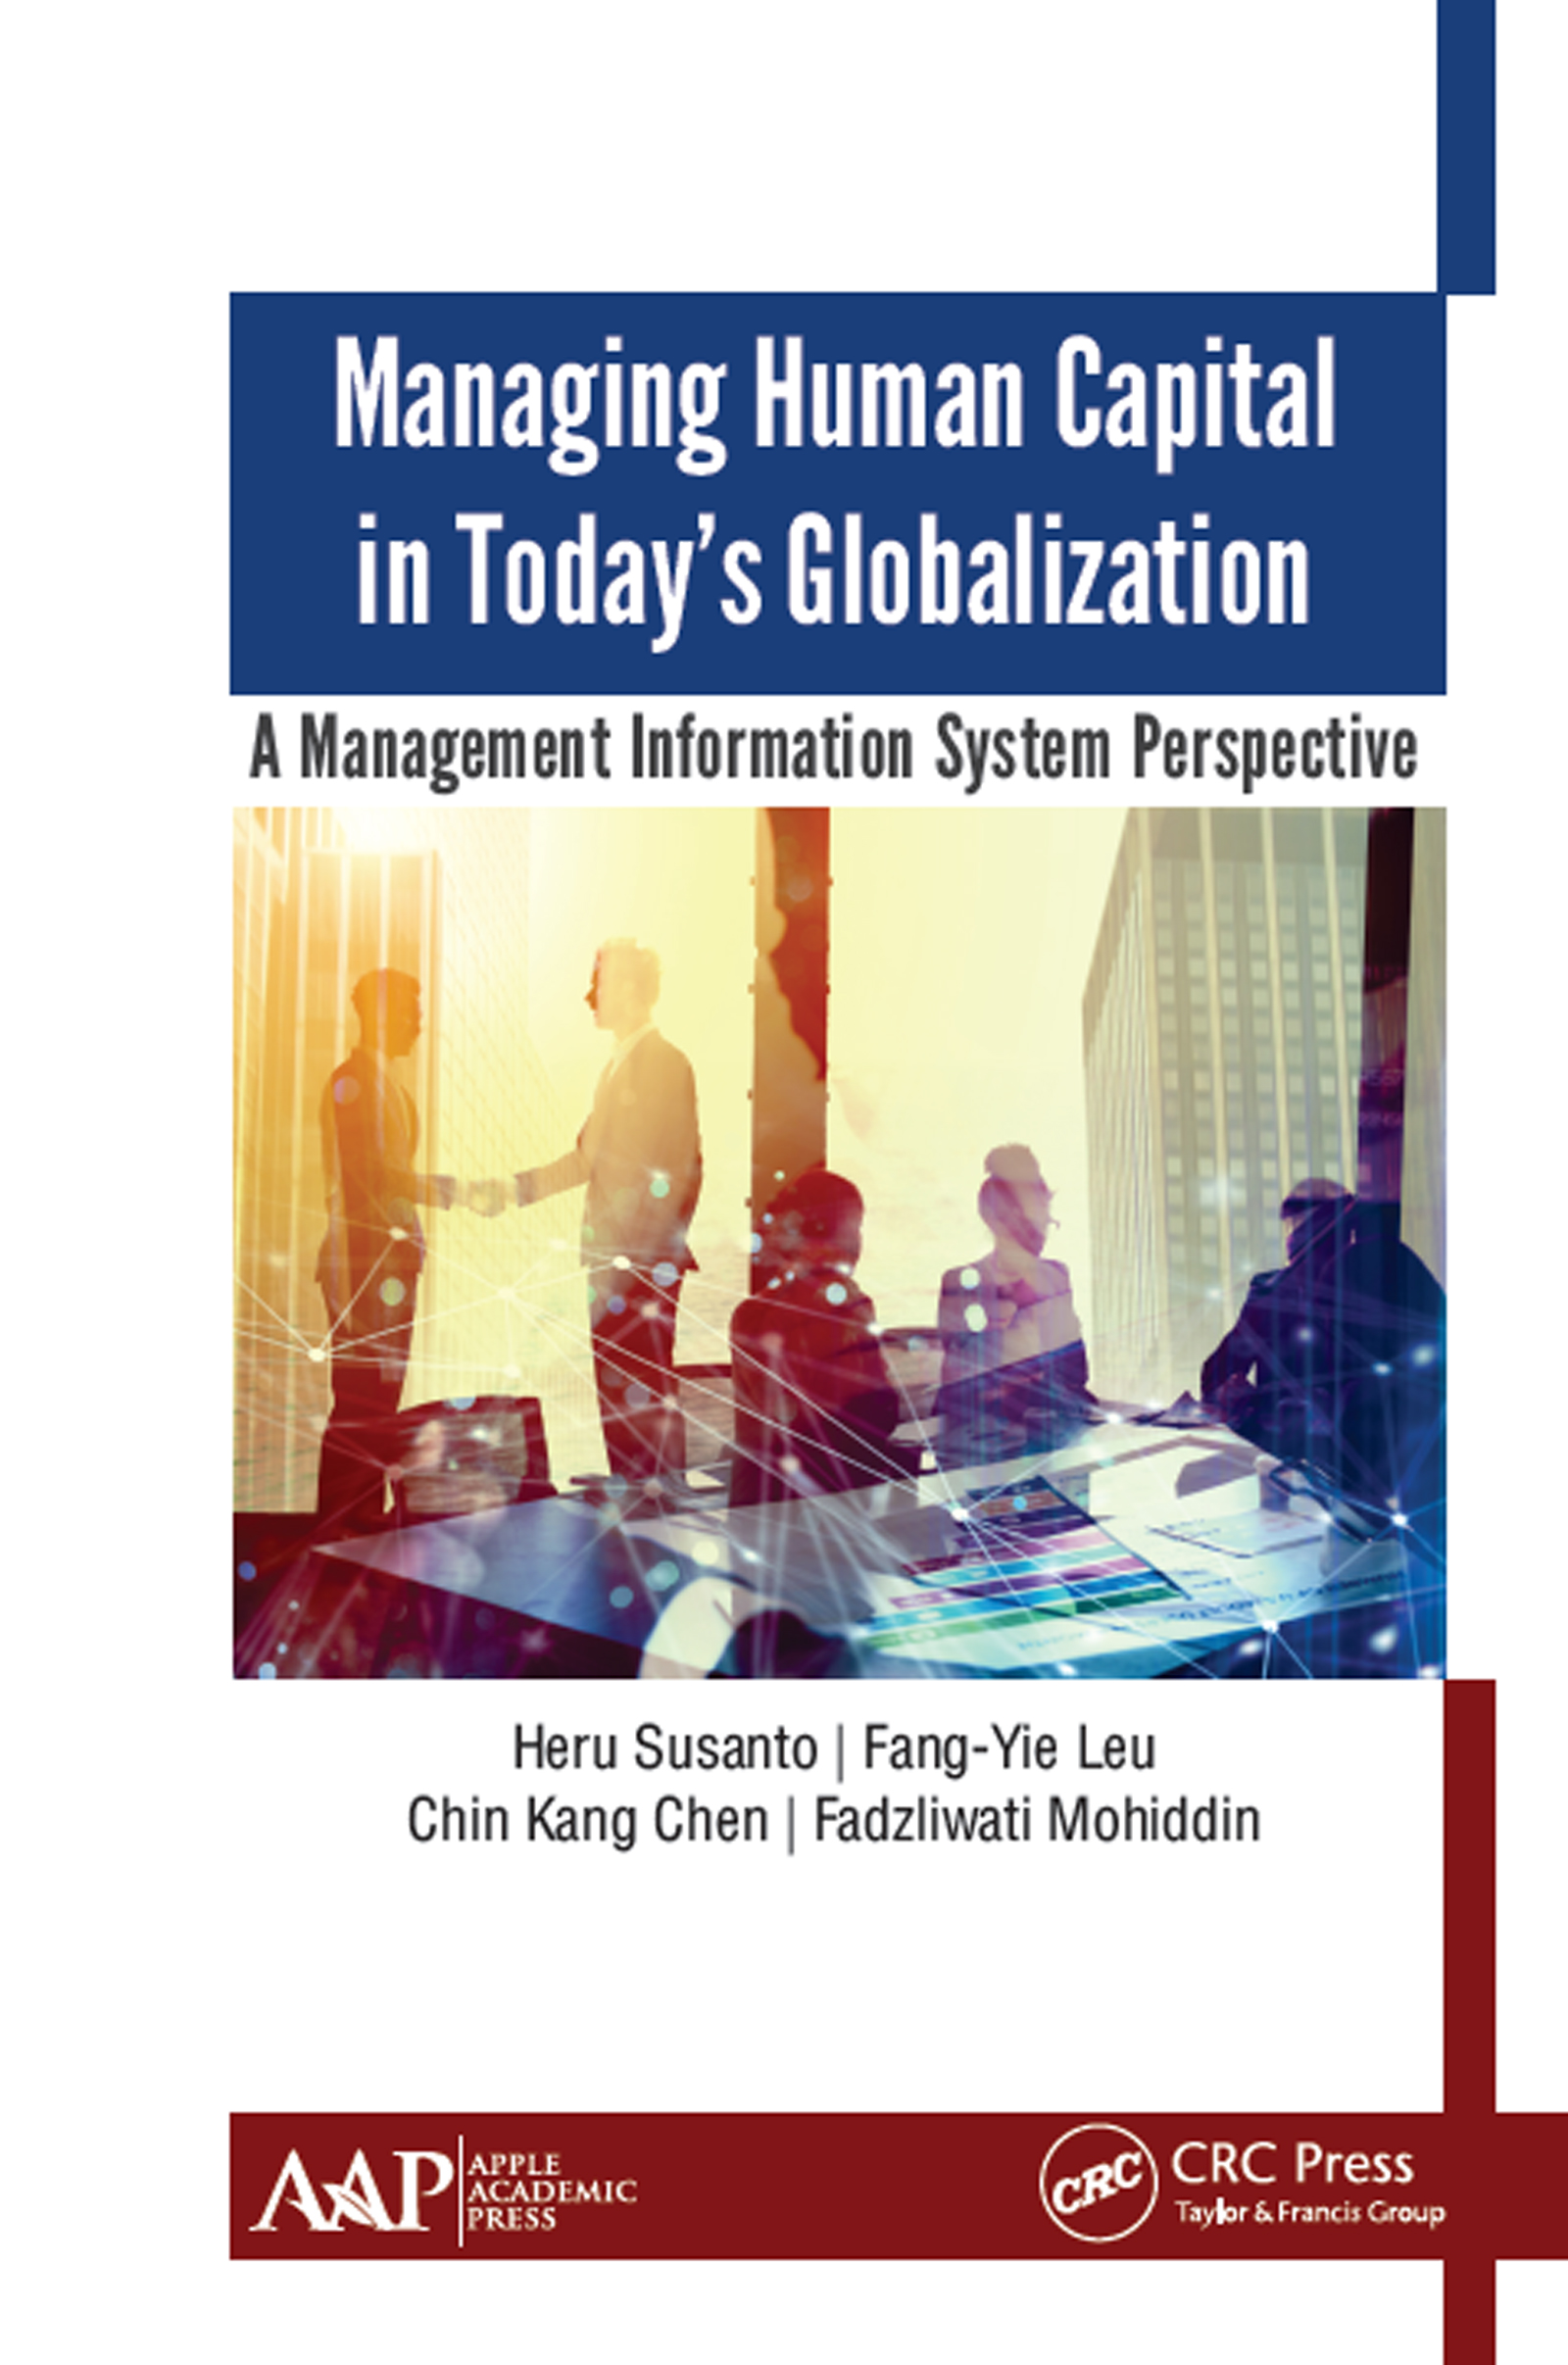 Managing Human Capital in Today's Globalization: A Management Information System Perspective book cover